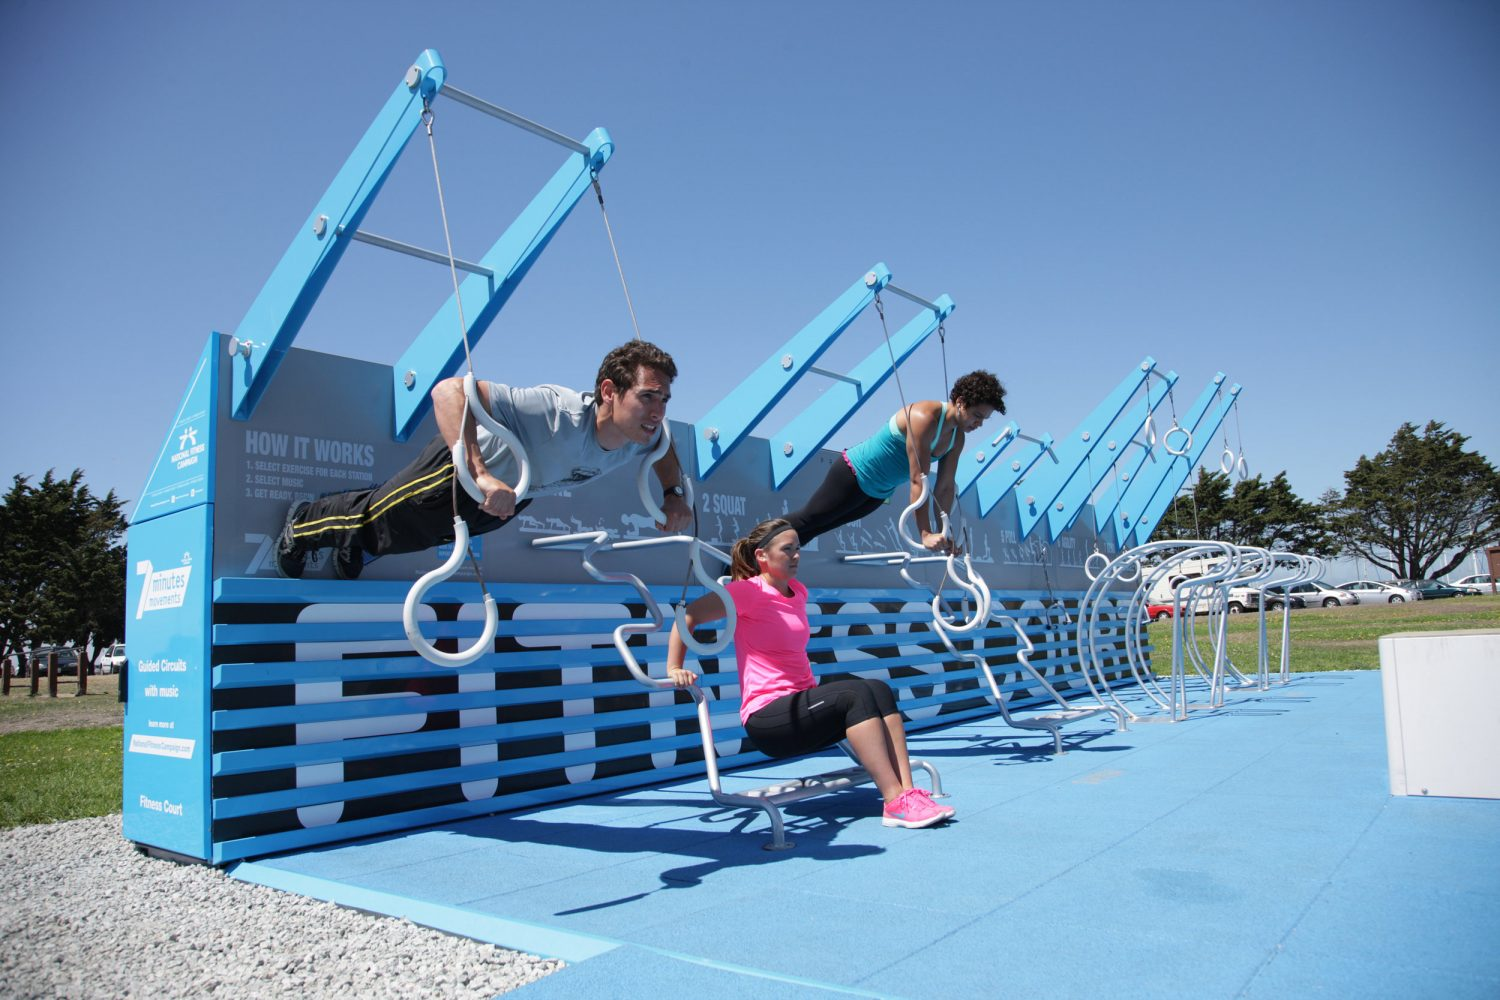 Three people are shown working out on outdoor fitness court.